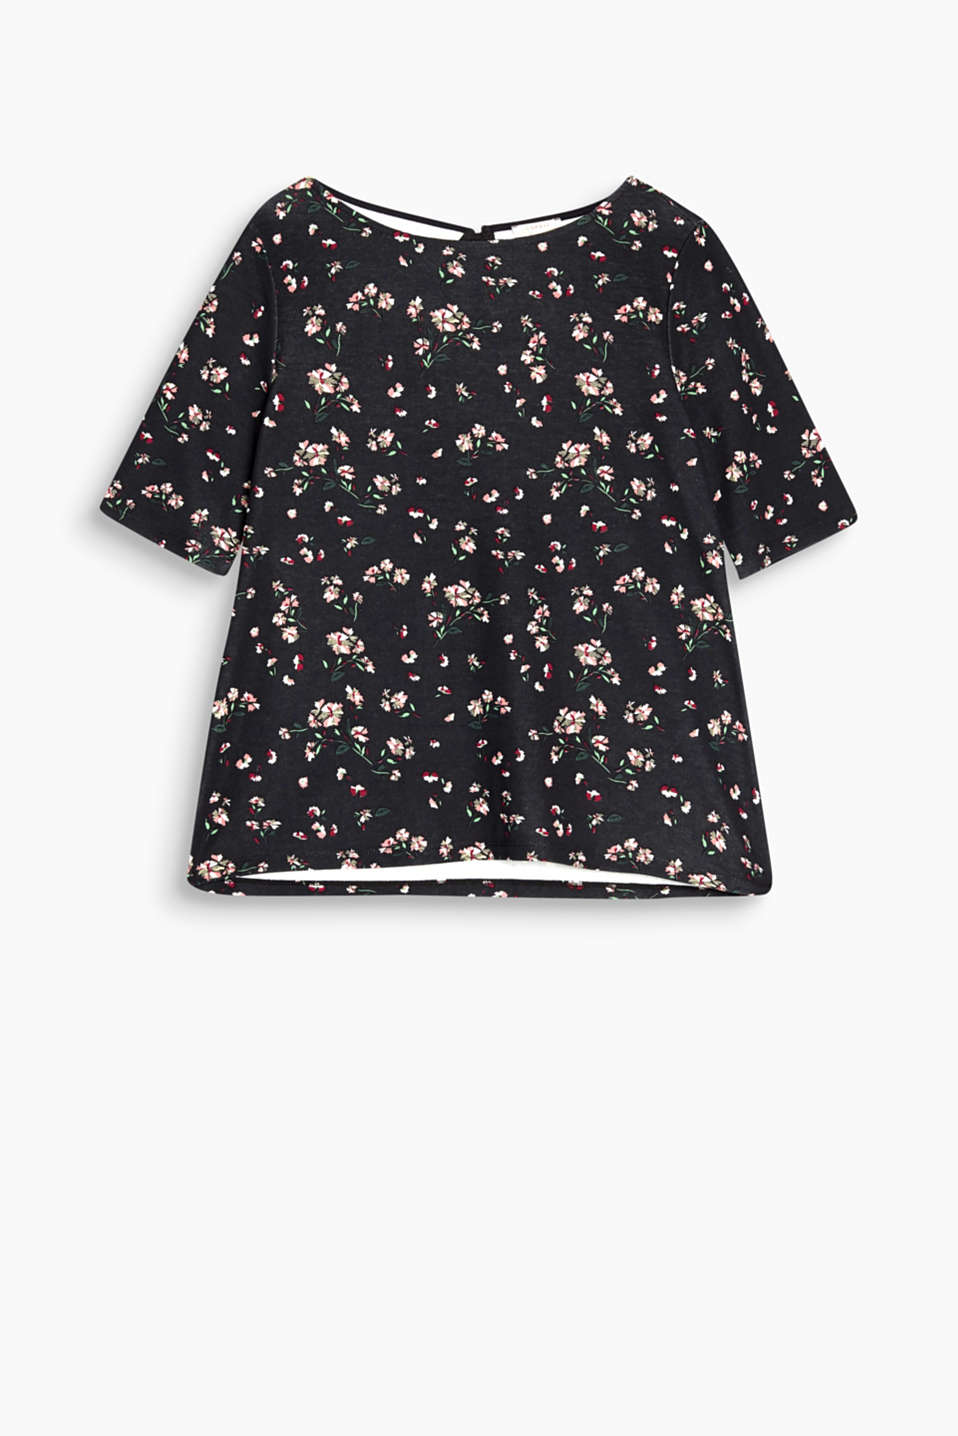 Fluid stretch top with a floral print and diagonal frill